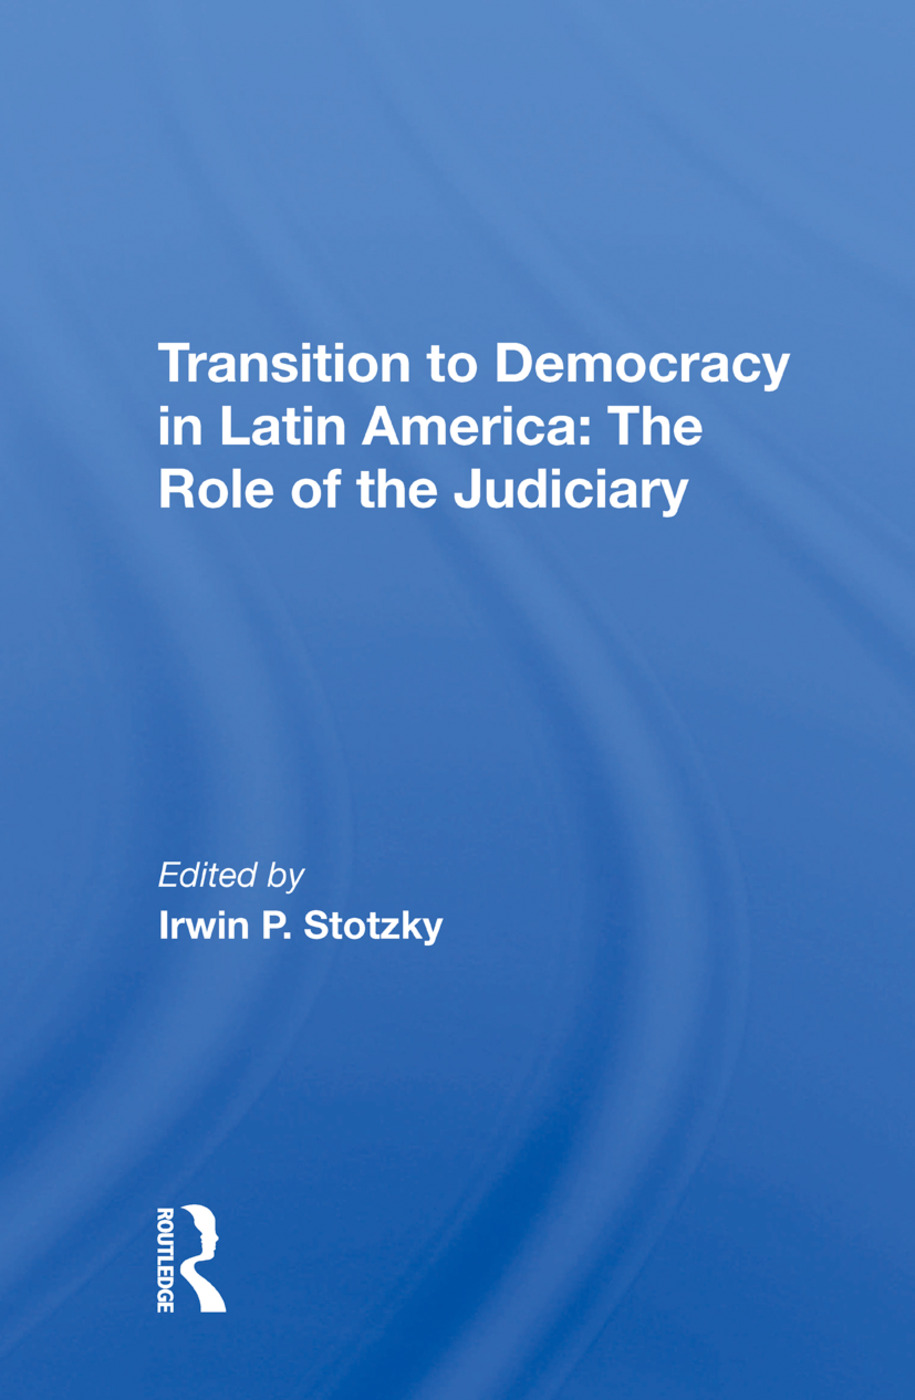 Transition to Democracy in Latin America: The Role of the Judiciary